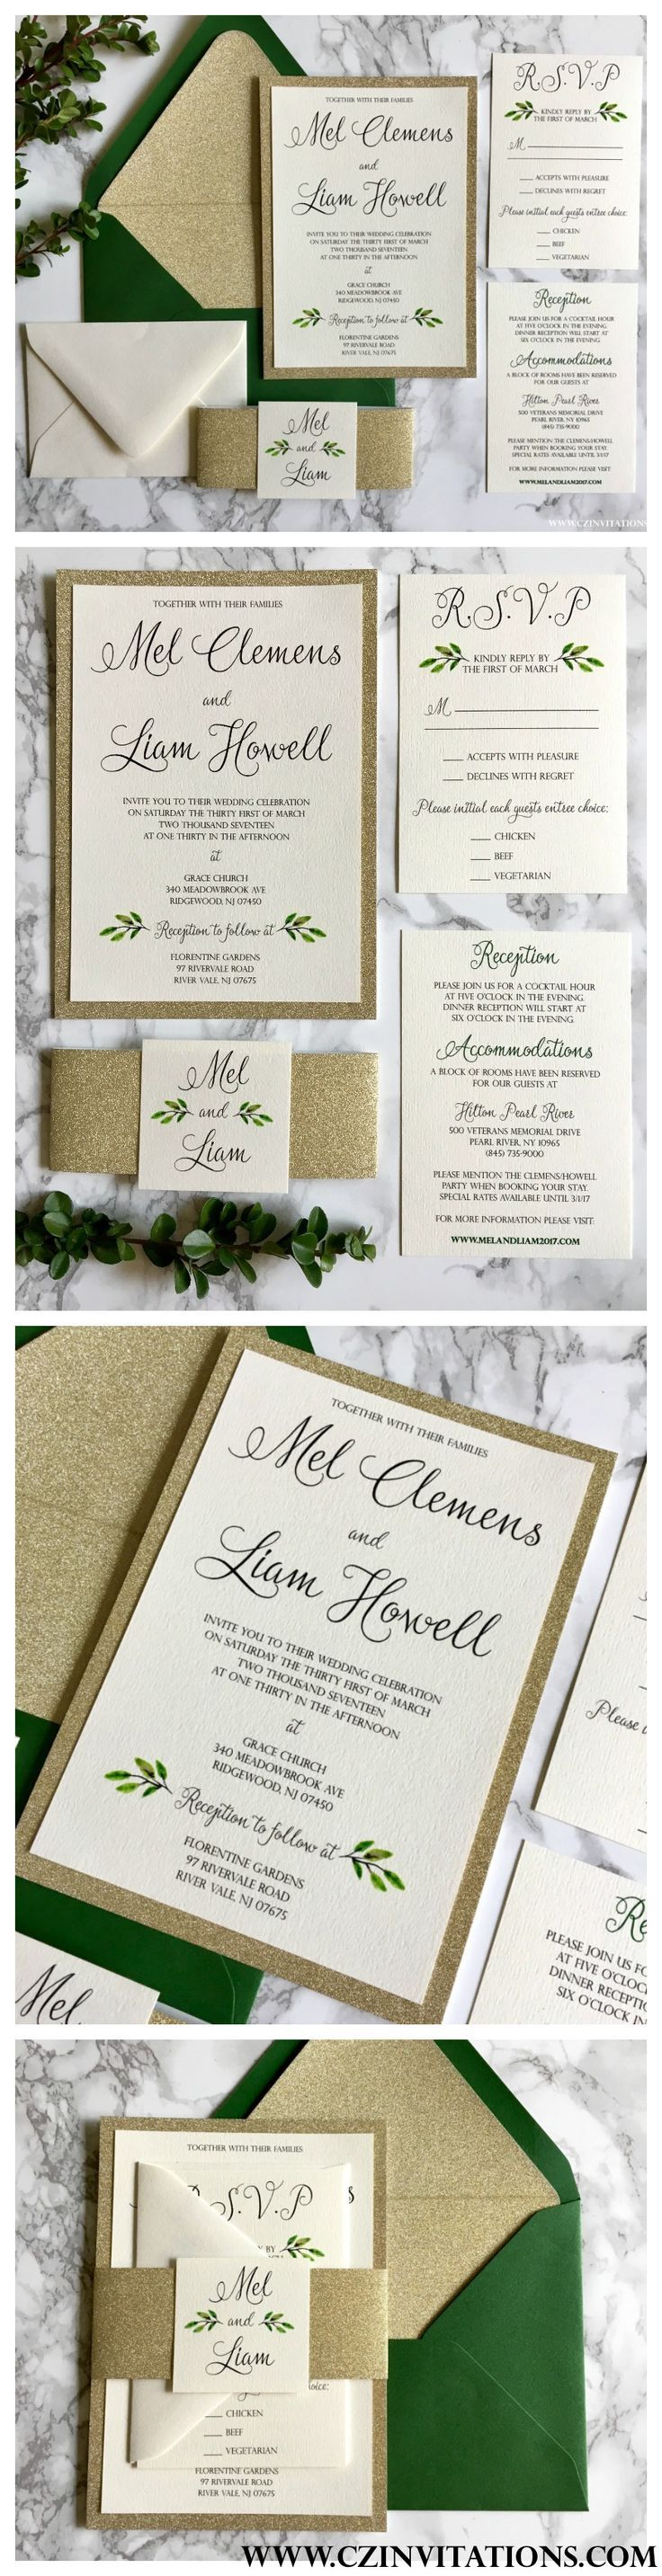 245 Best Wedding Invitations By Cz Invitations Images On Pinterest